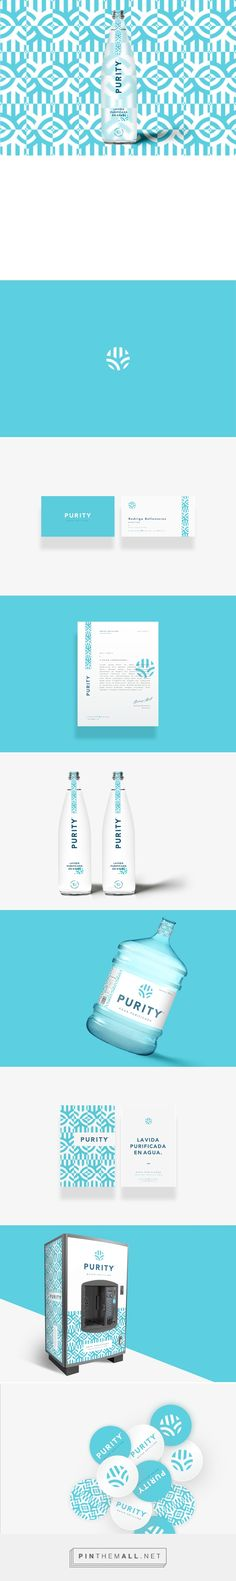 PURITY on Behance - created via https://pinthemall.net